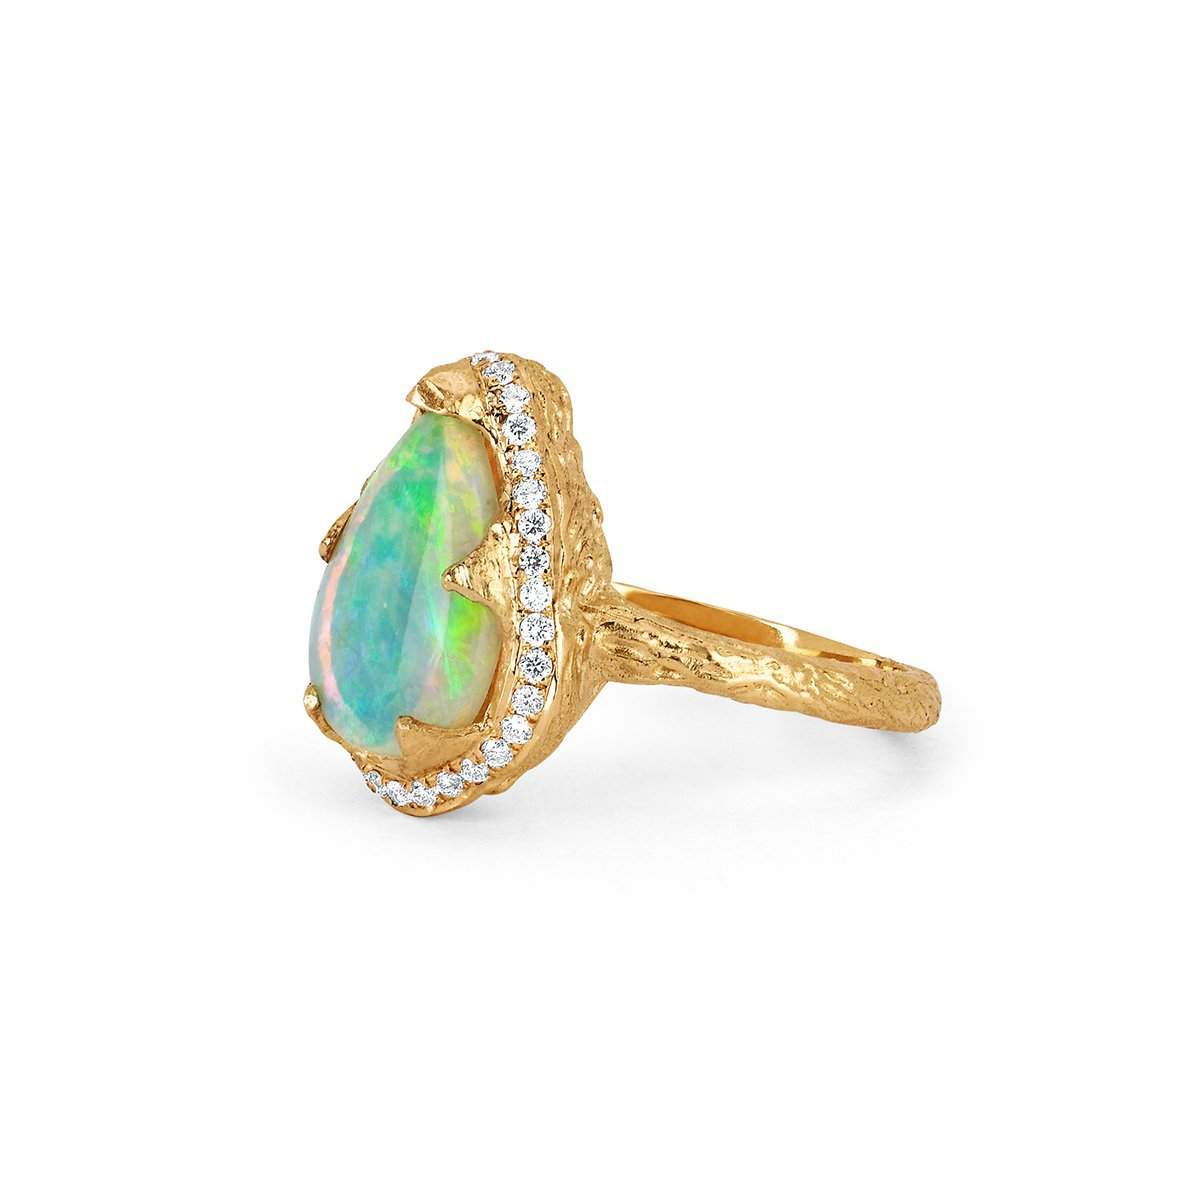 NEW! 18k One of A Kind Water Drop Premium Blue Opal Queen Ring with Pavé Diamond Halo